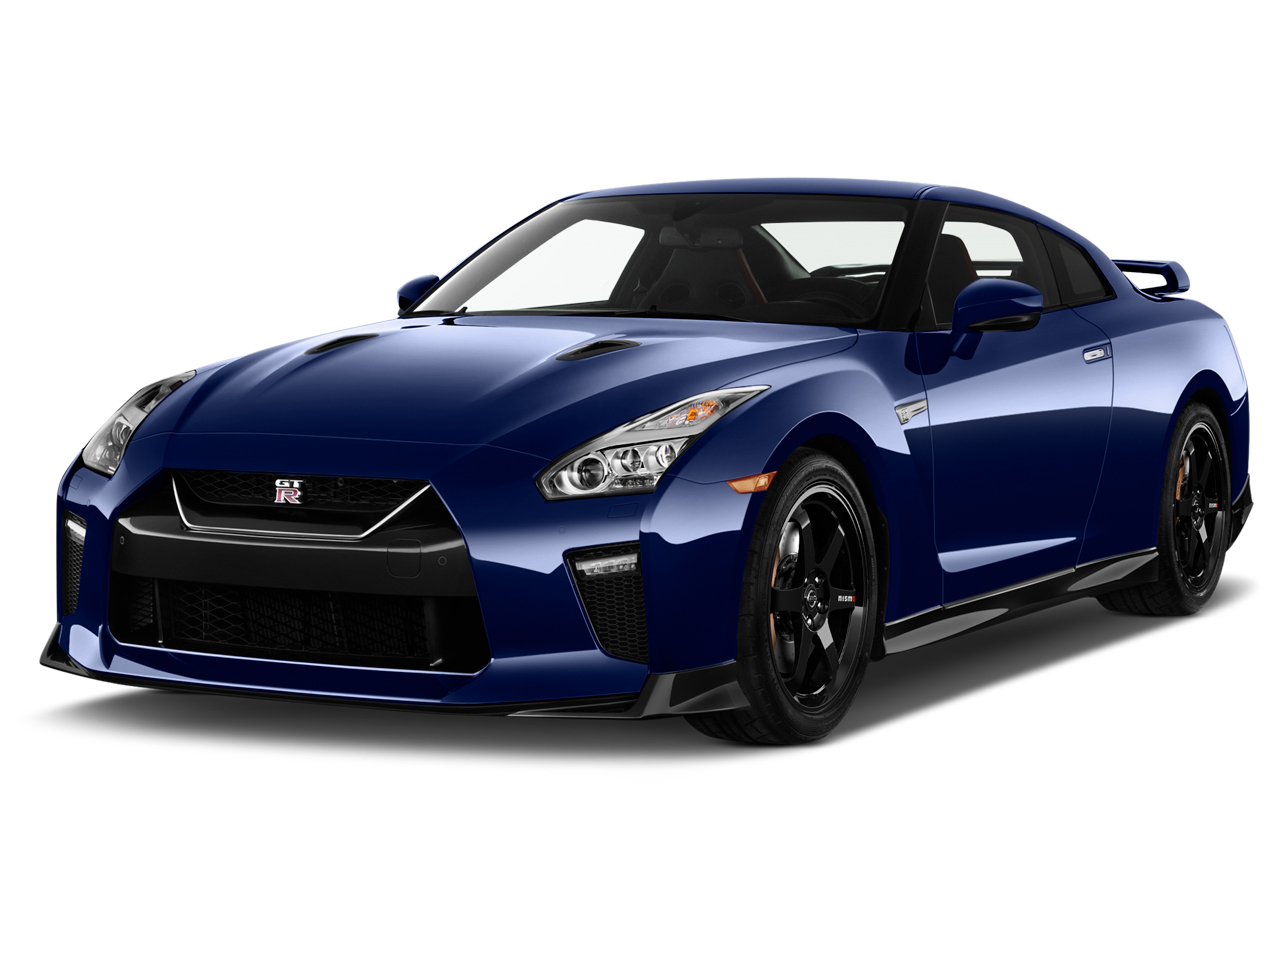 2019 Nissan GT-R Review, Ratings, Specs, Prices, and Photos